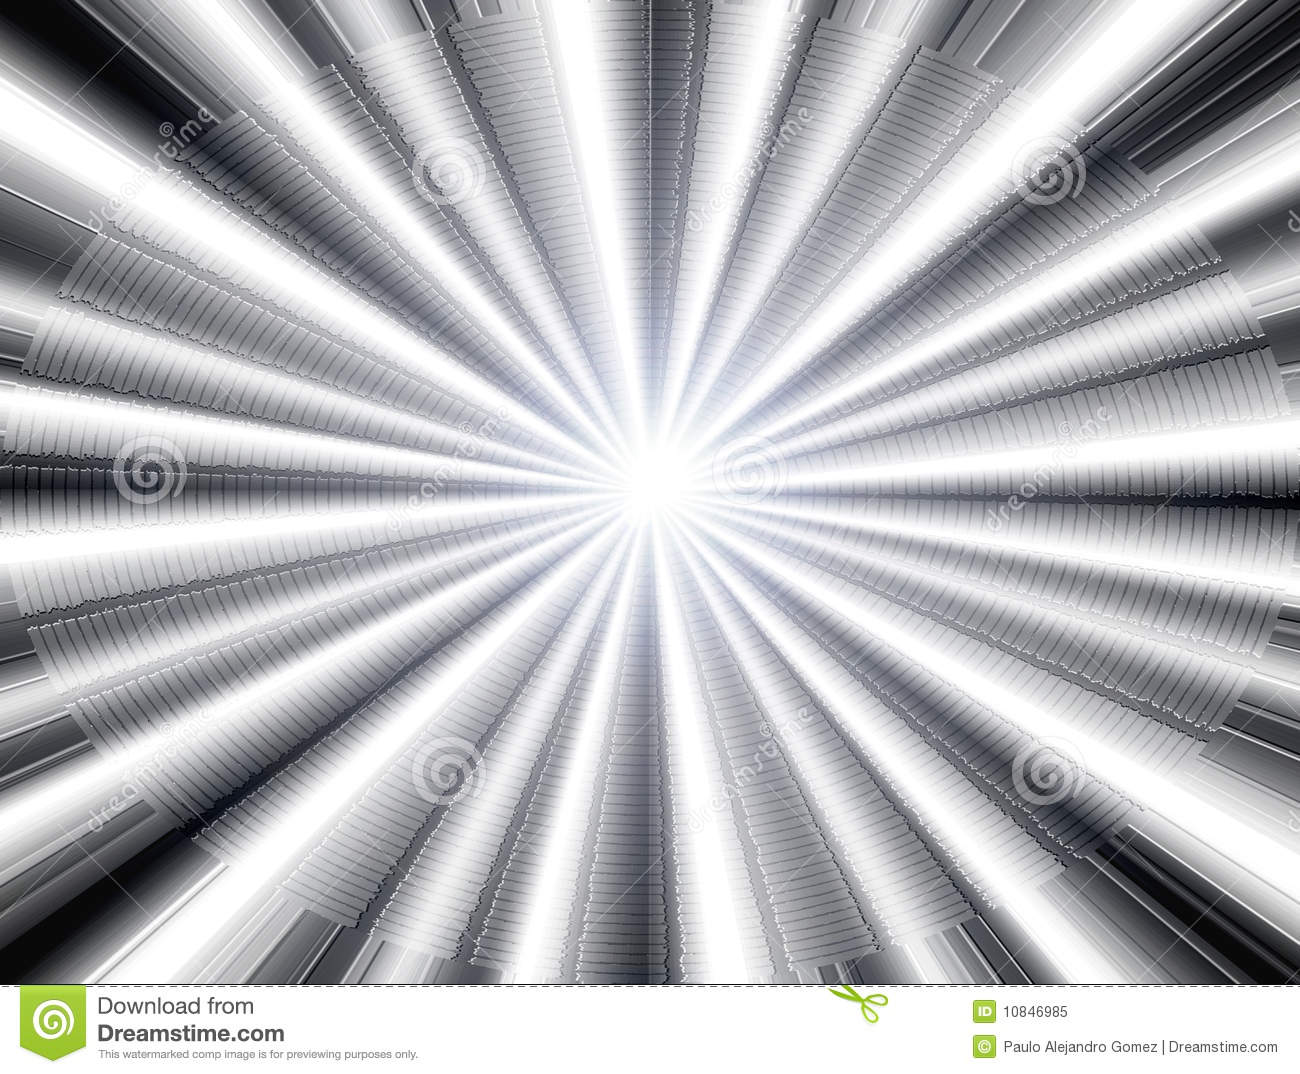 Light rays coming through clipart - Clipground